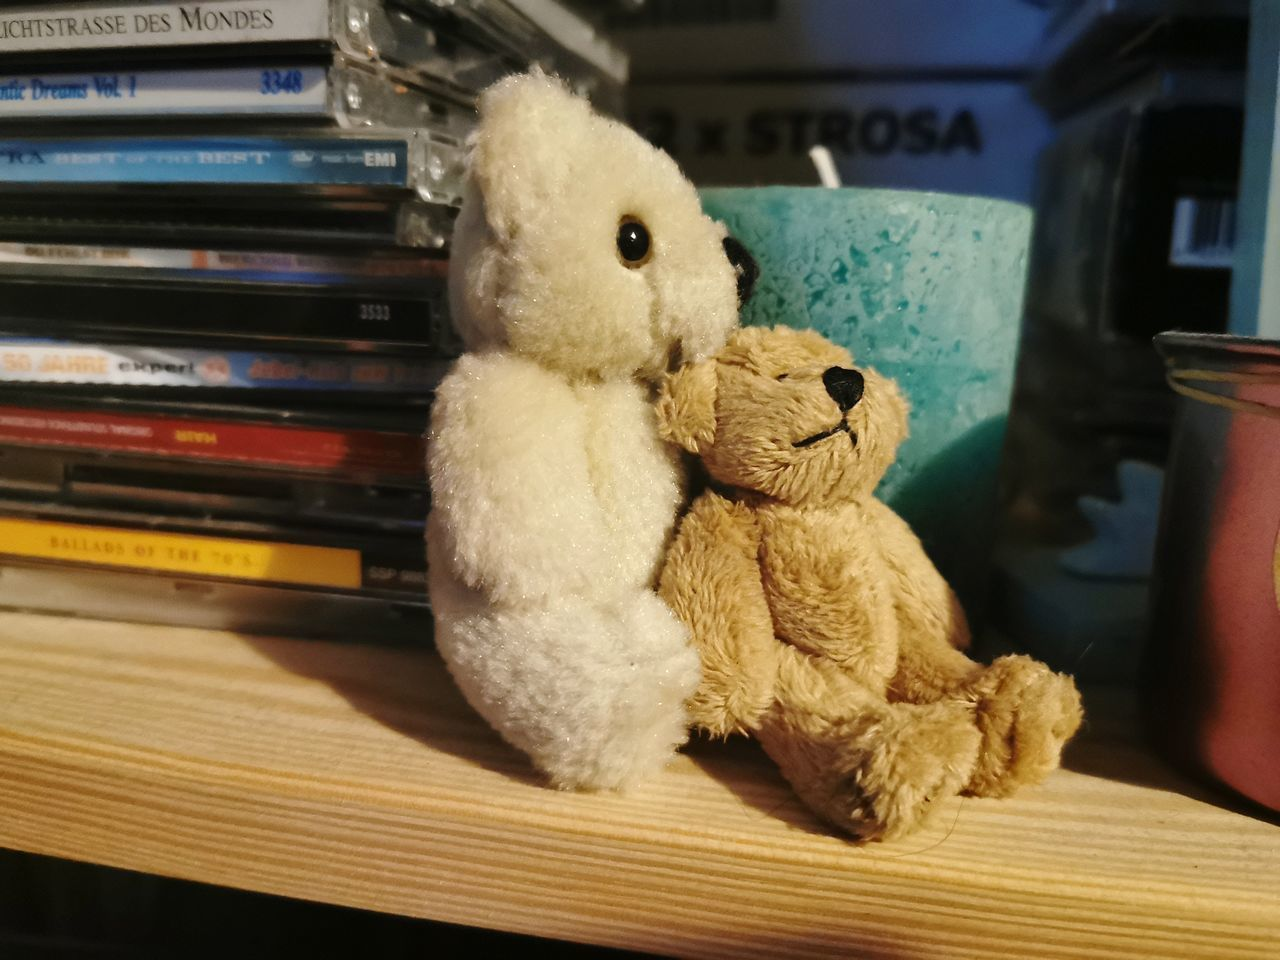 CLOSE-UP OF STUFFED TOY ON BOOK AT HOME